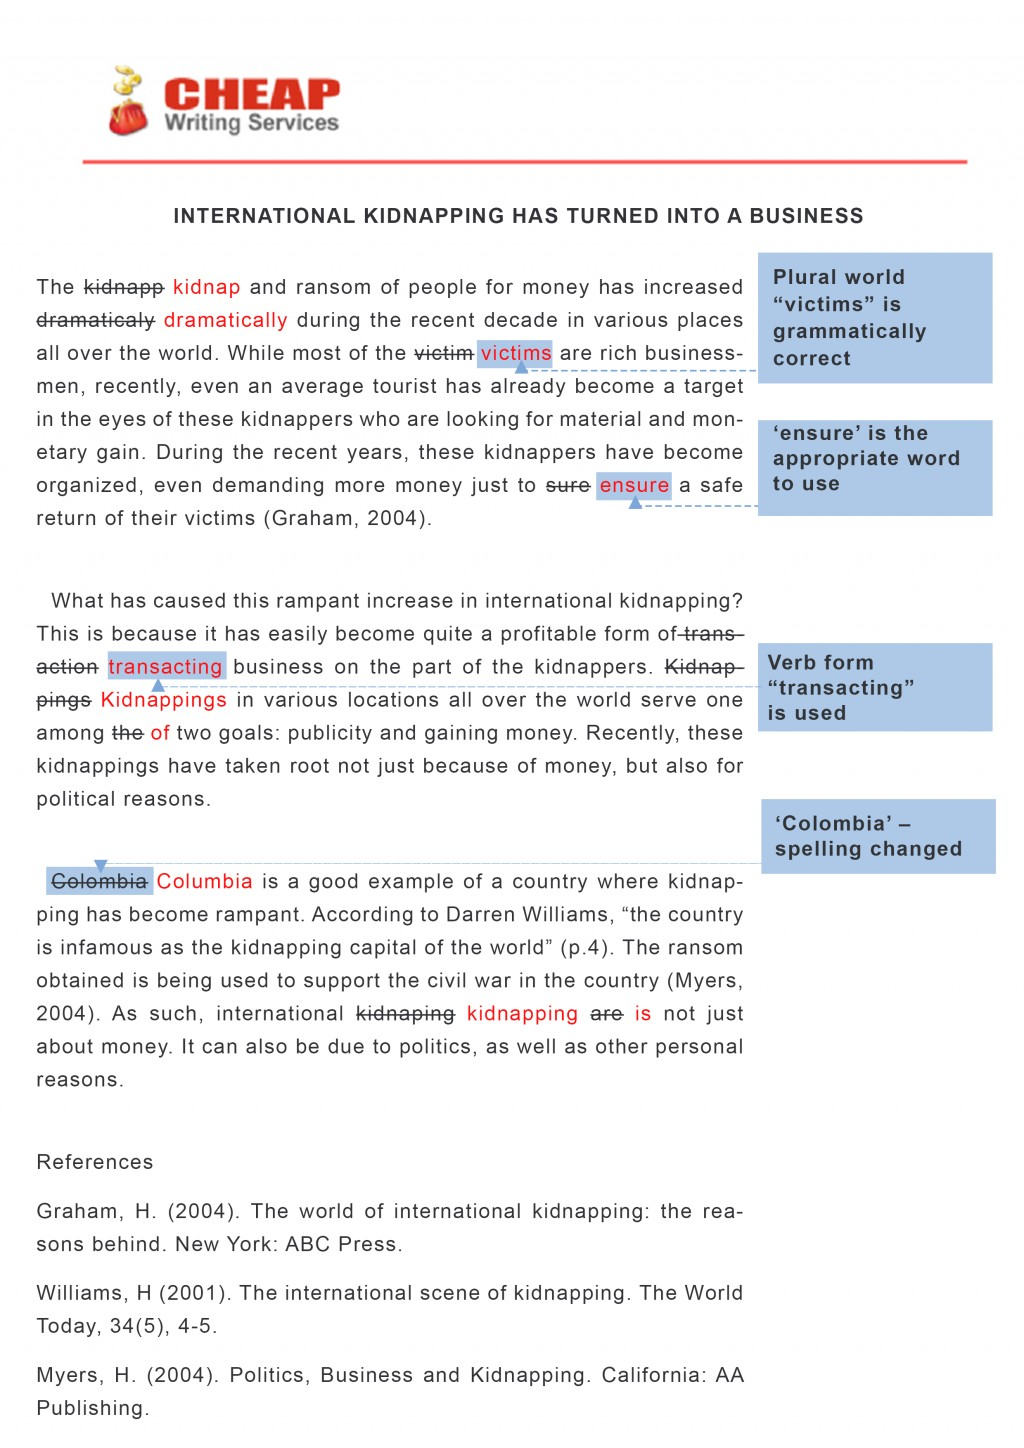 006 Essay Proofreading Example Free Online Rare Editor Software Ielts Correction Large